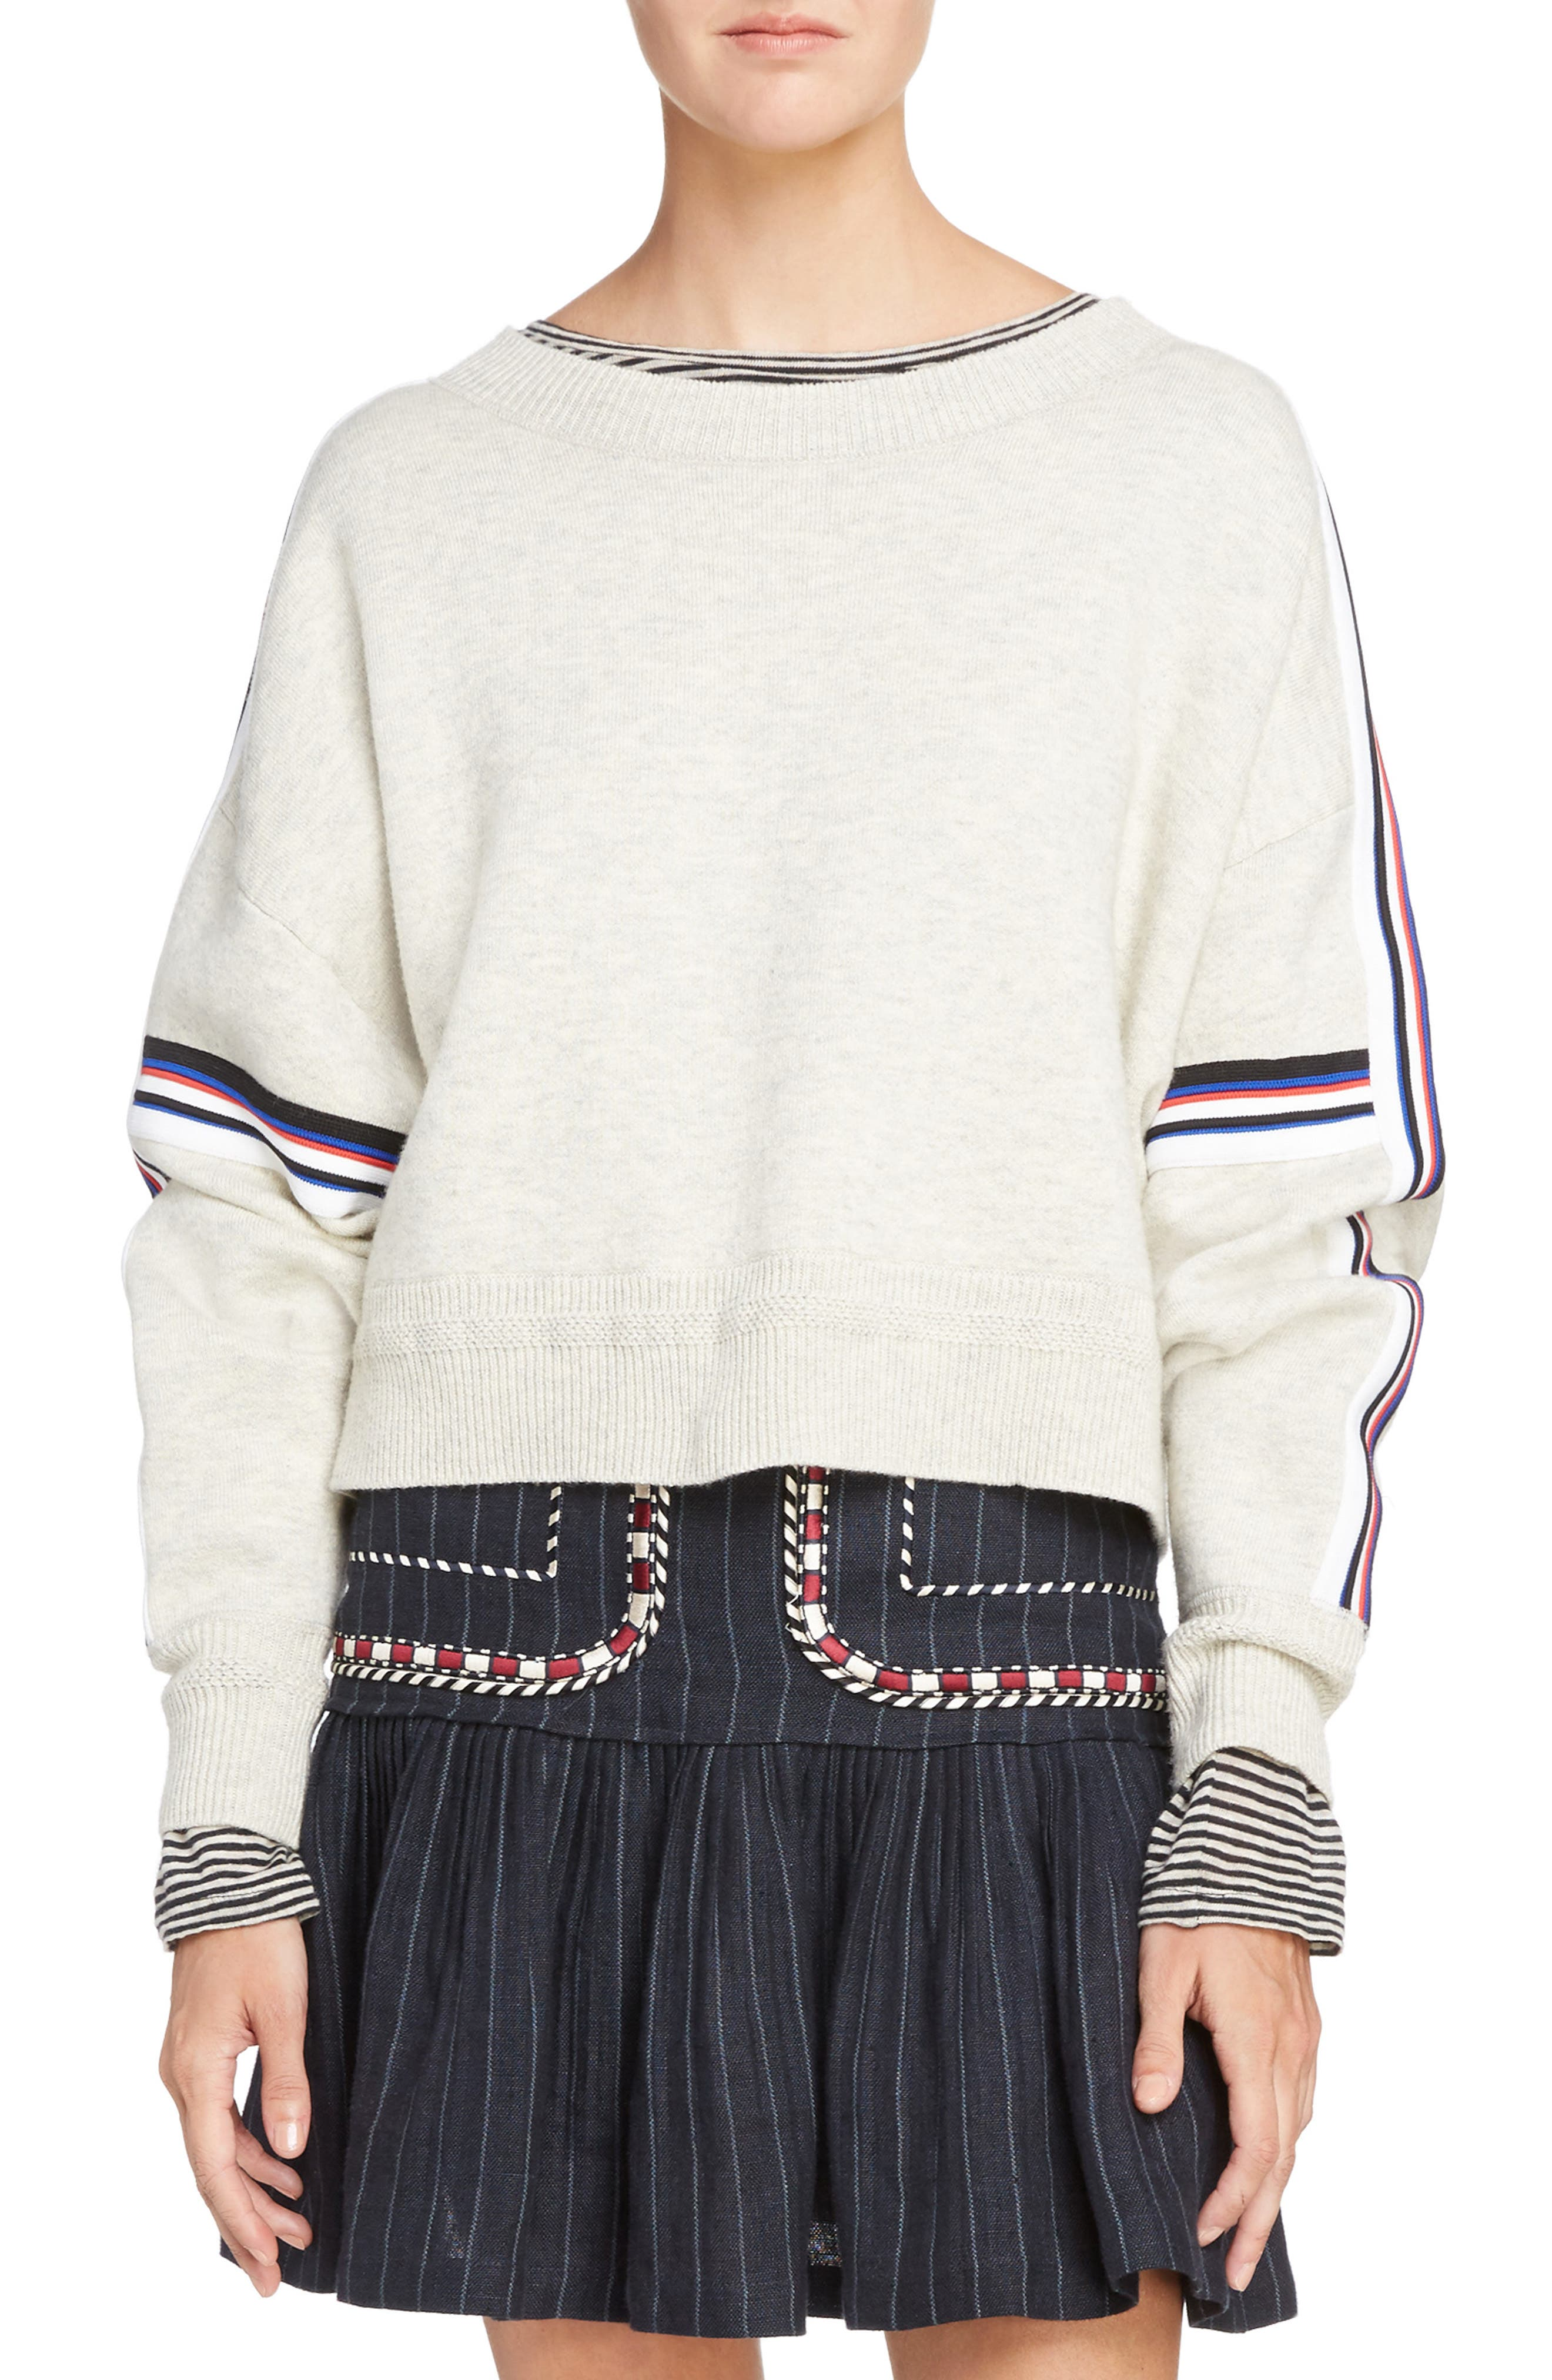 Isabel Marant Étoile Kao Sweatshirt,                             Main thumbnail 1, color,